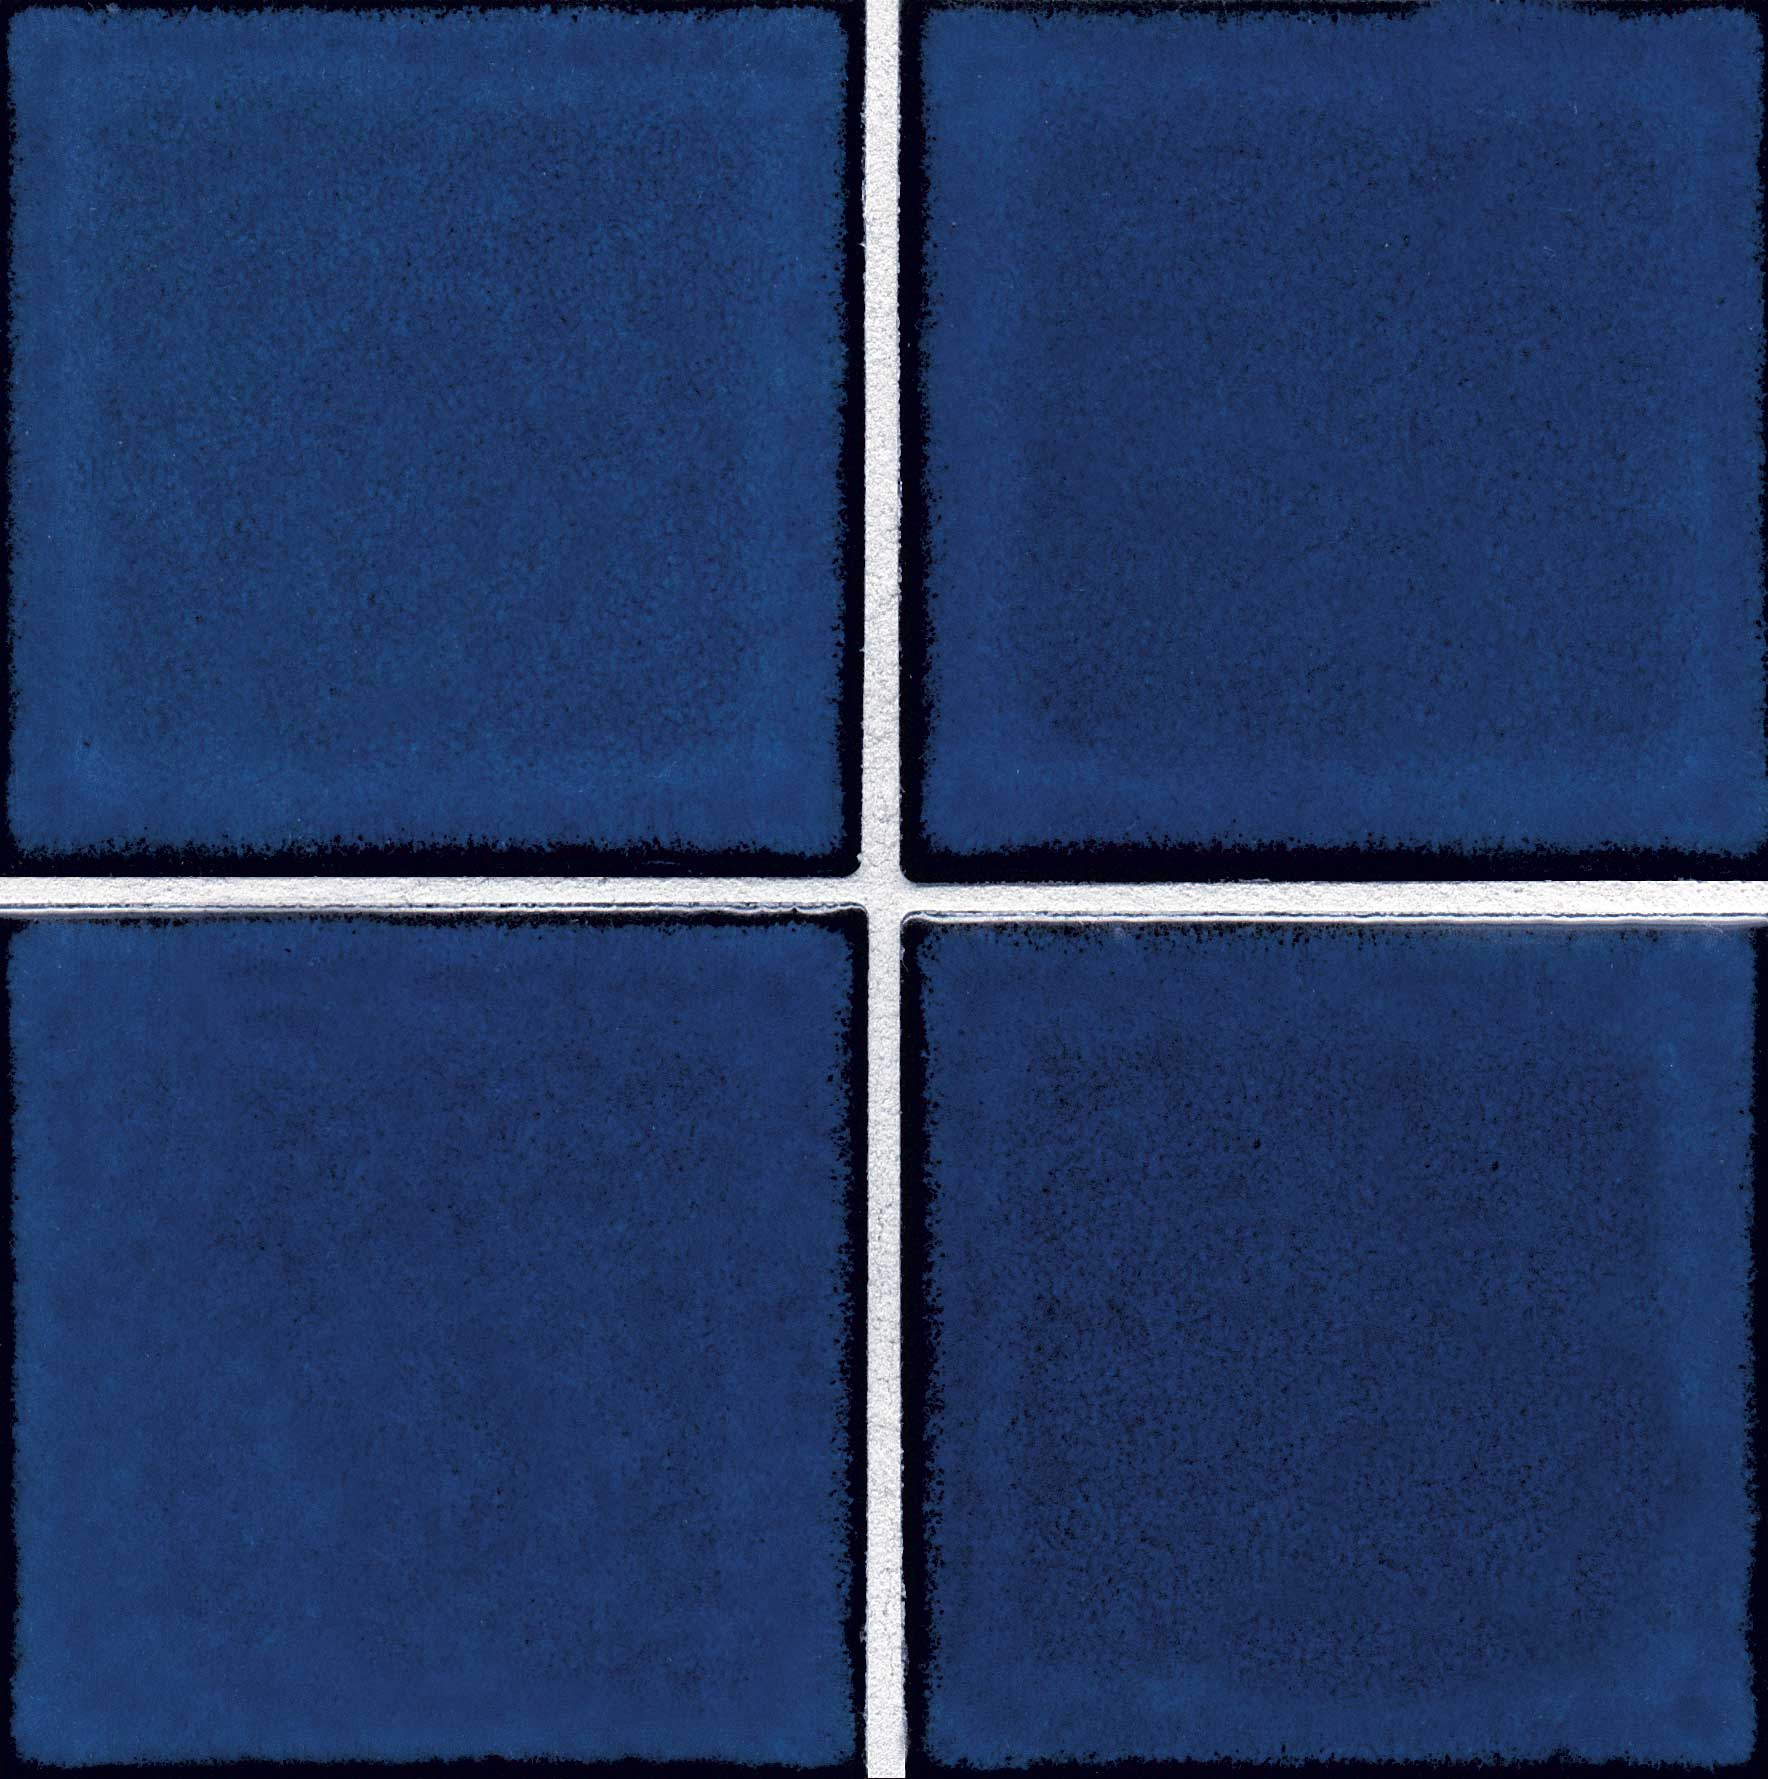 Hm 306 Cobalt Blue Universal Pool Tile Your Quality